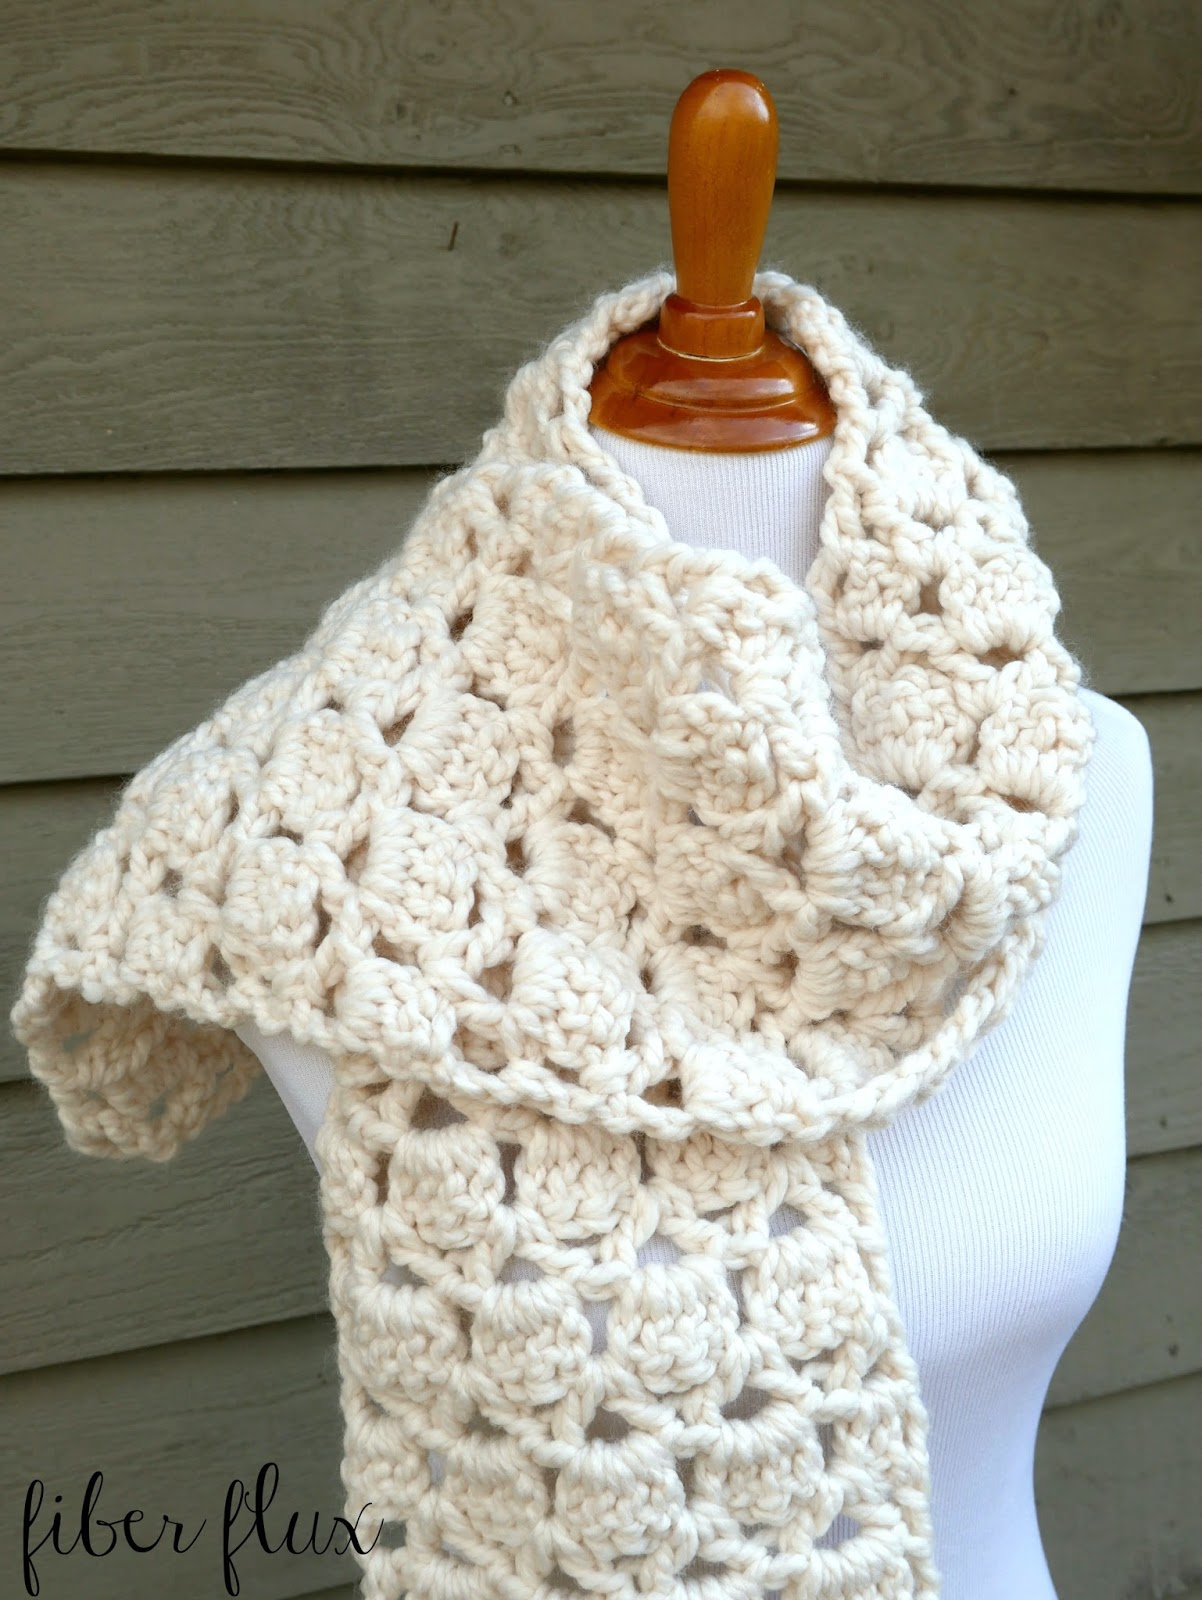 Free Crochet Scarf Patterns For Bulky Yarn : Fiber Flux: Free Crochet Pattern...Sugar Cookie Scarf!